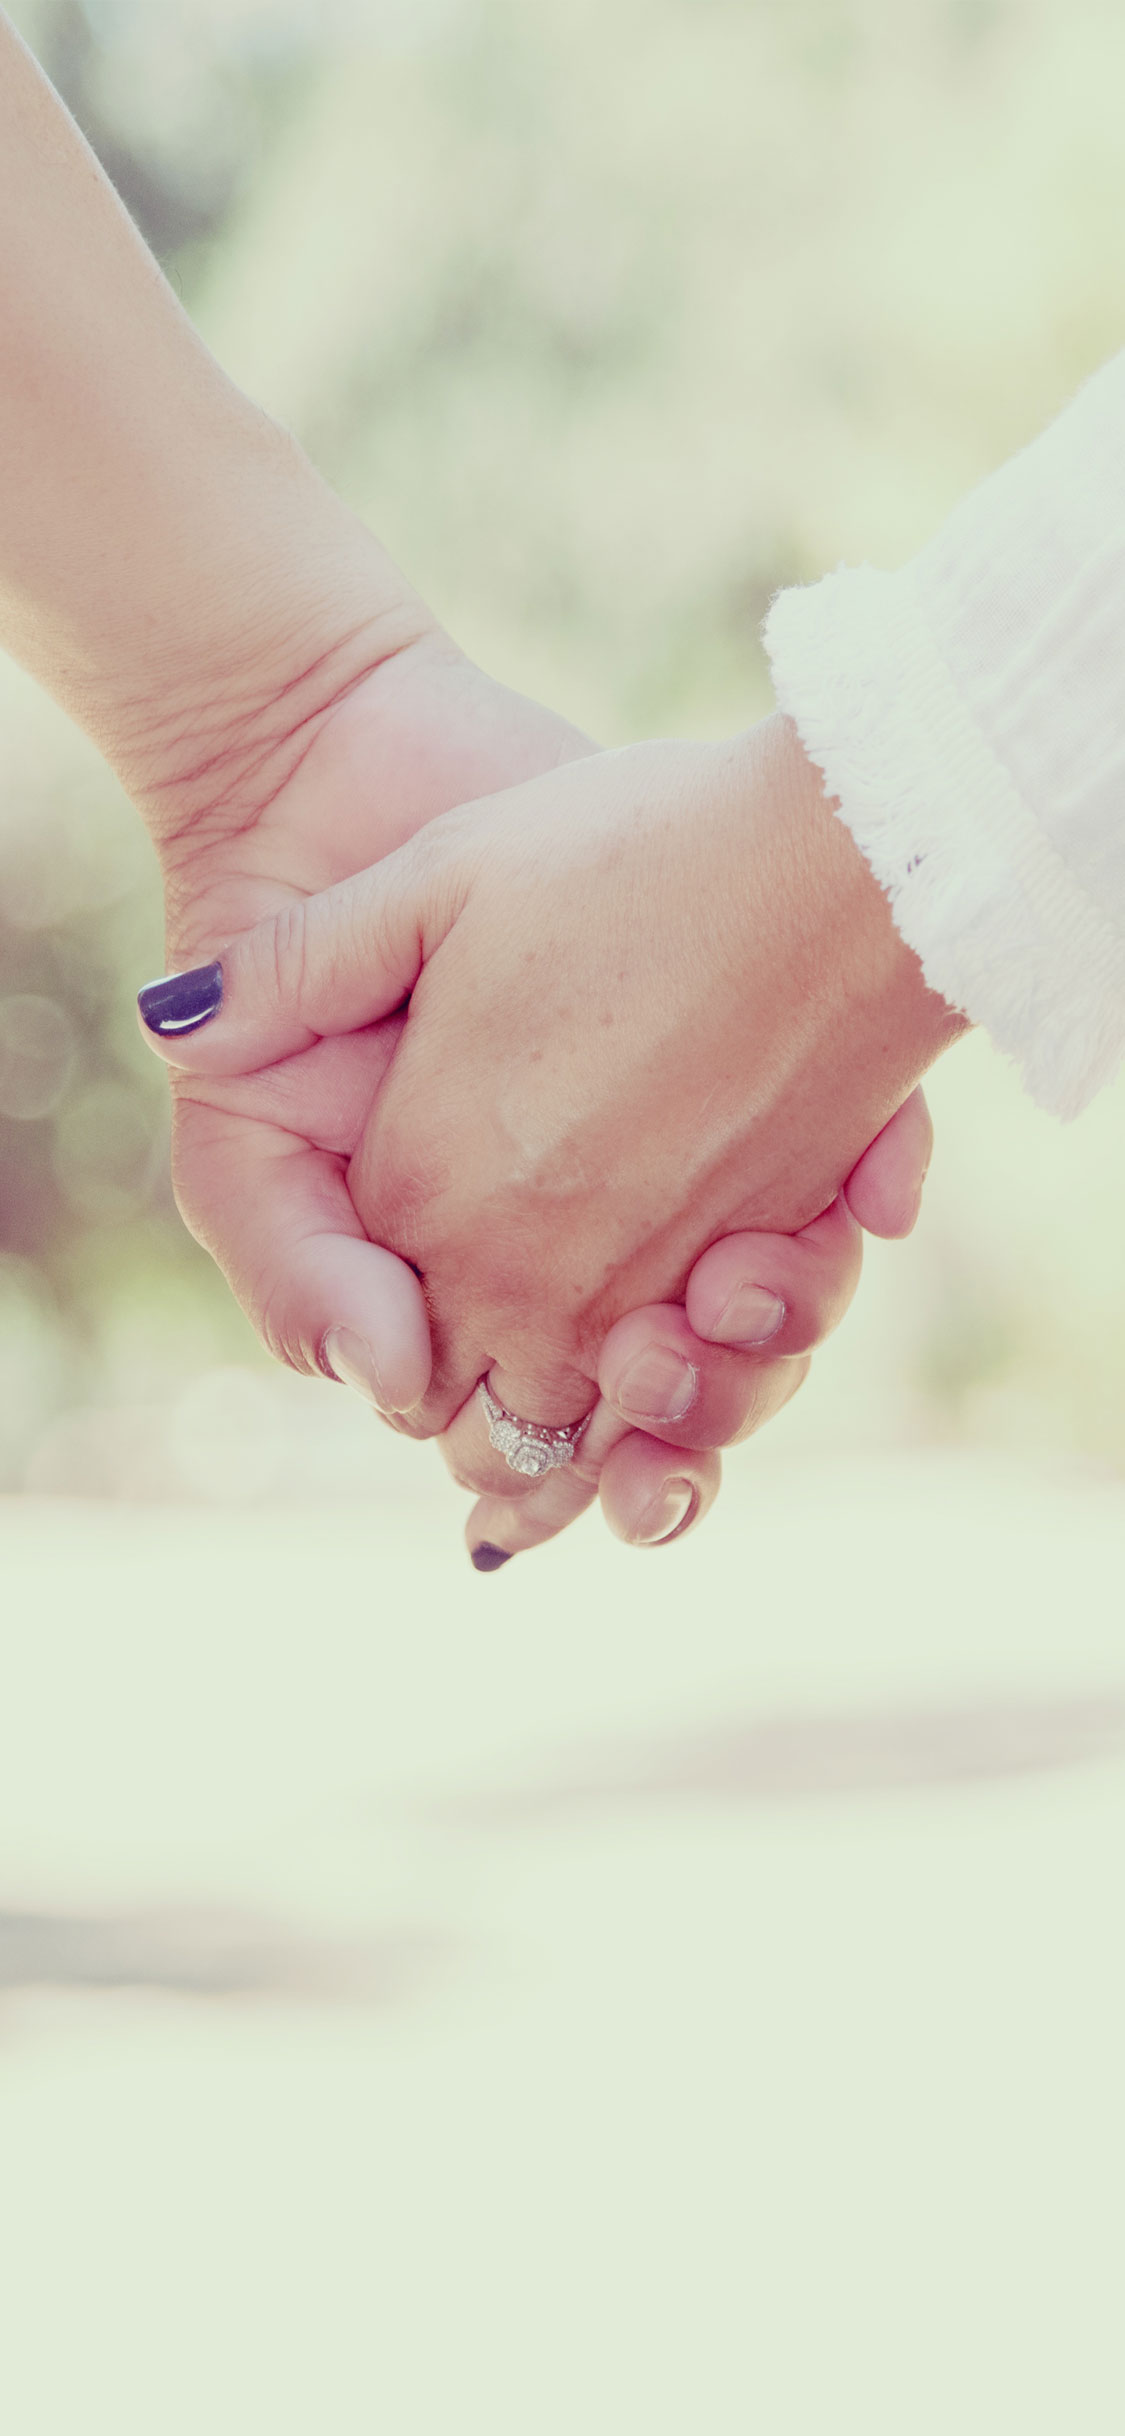 Cute Couples Holding Hands Wallpapers 30 New Iphone X Love Wallpapers Backgrounds For Couples